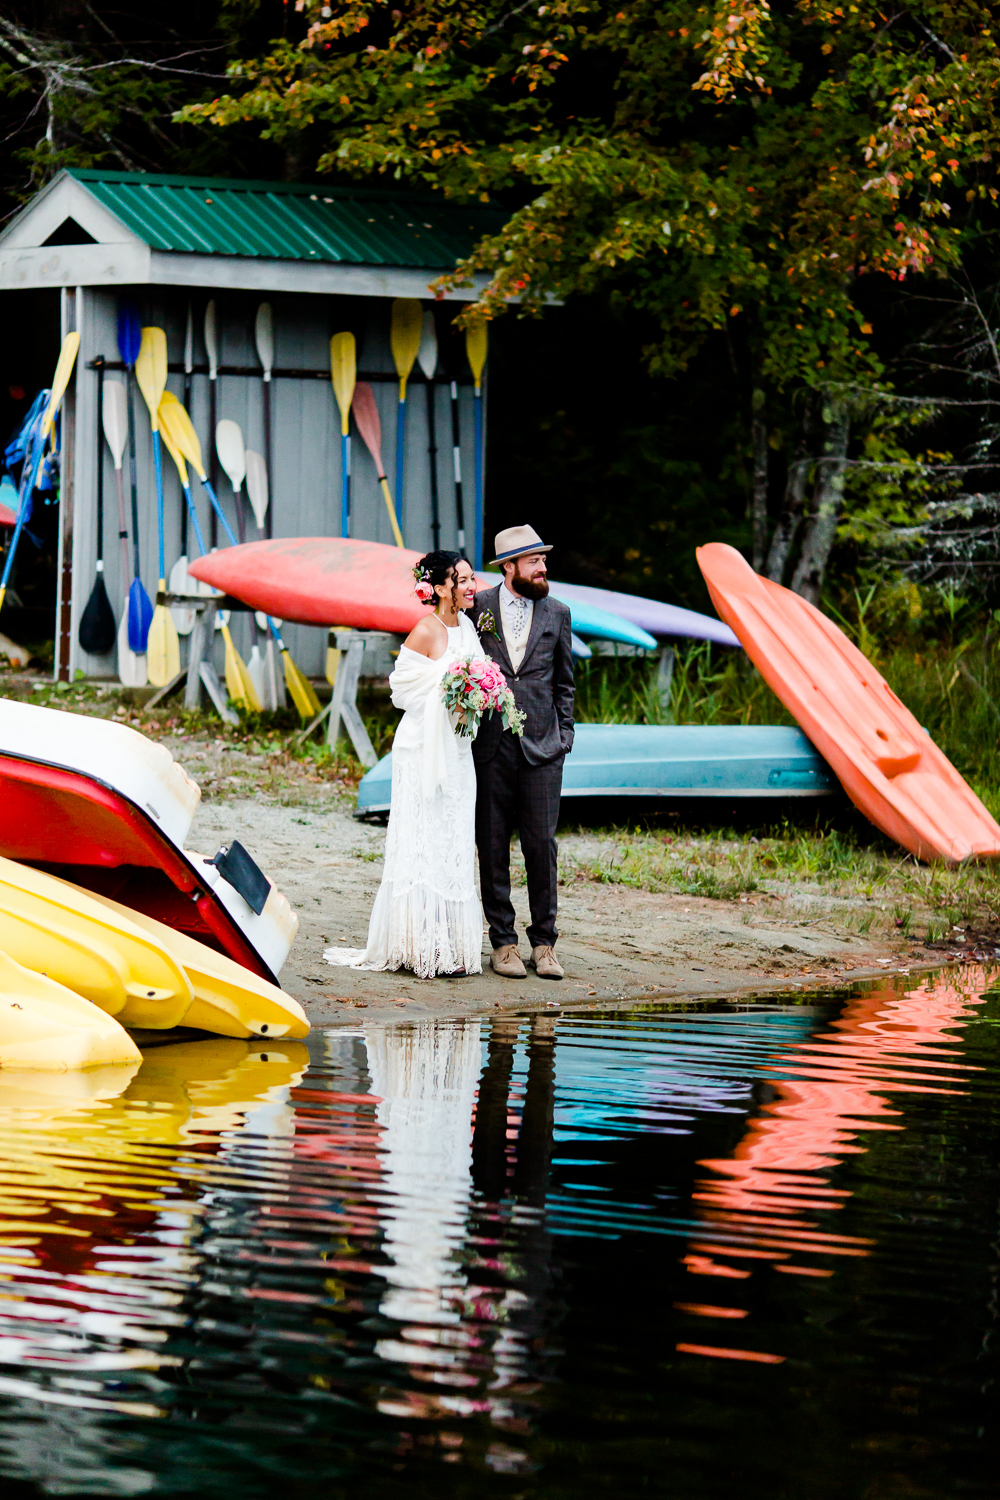 Adirondack-outdoor-camp-wedding-68.jpg